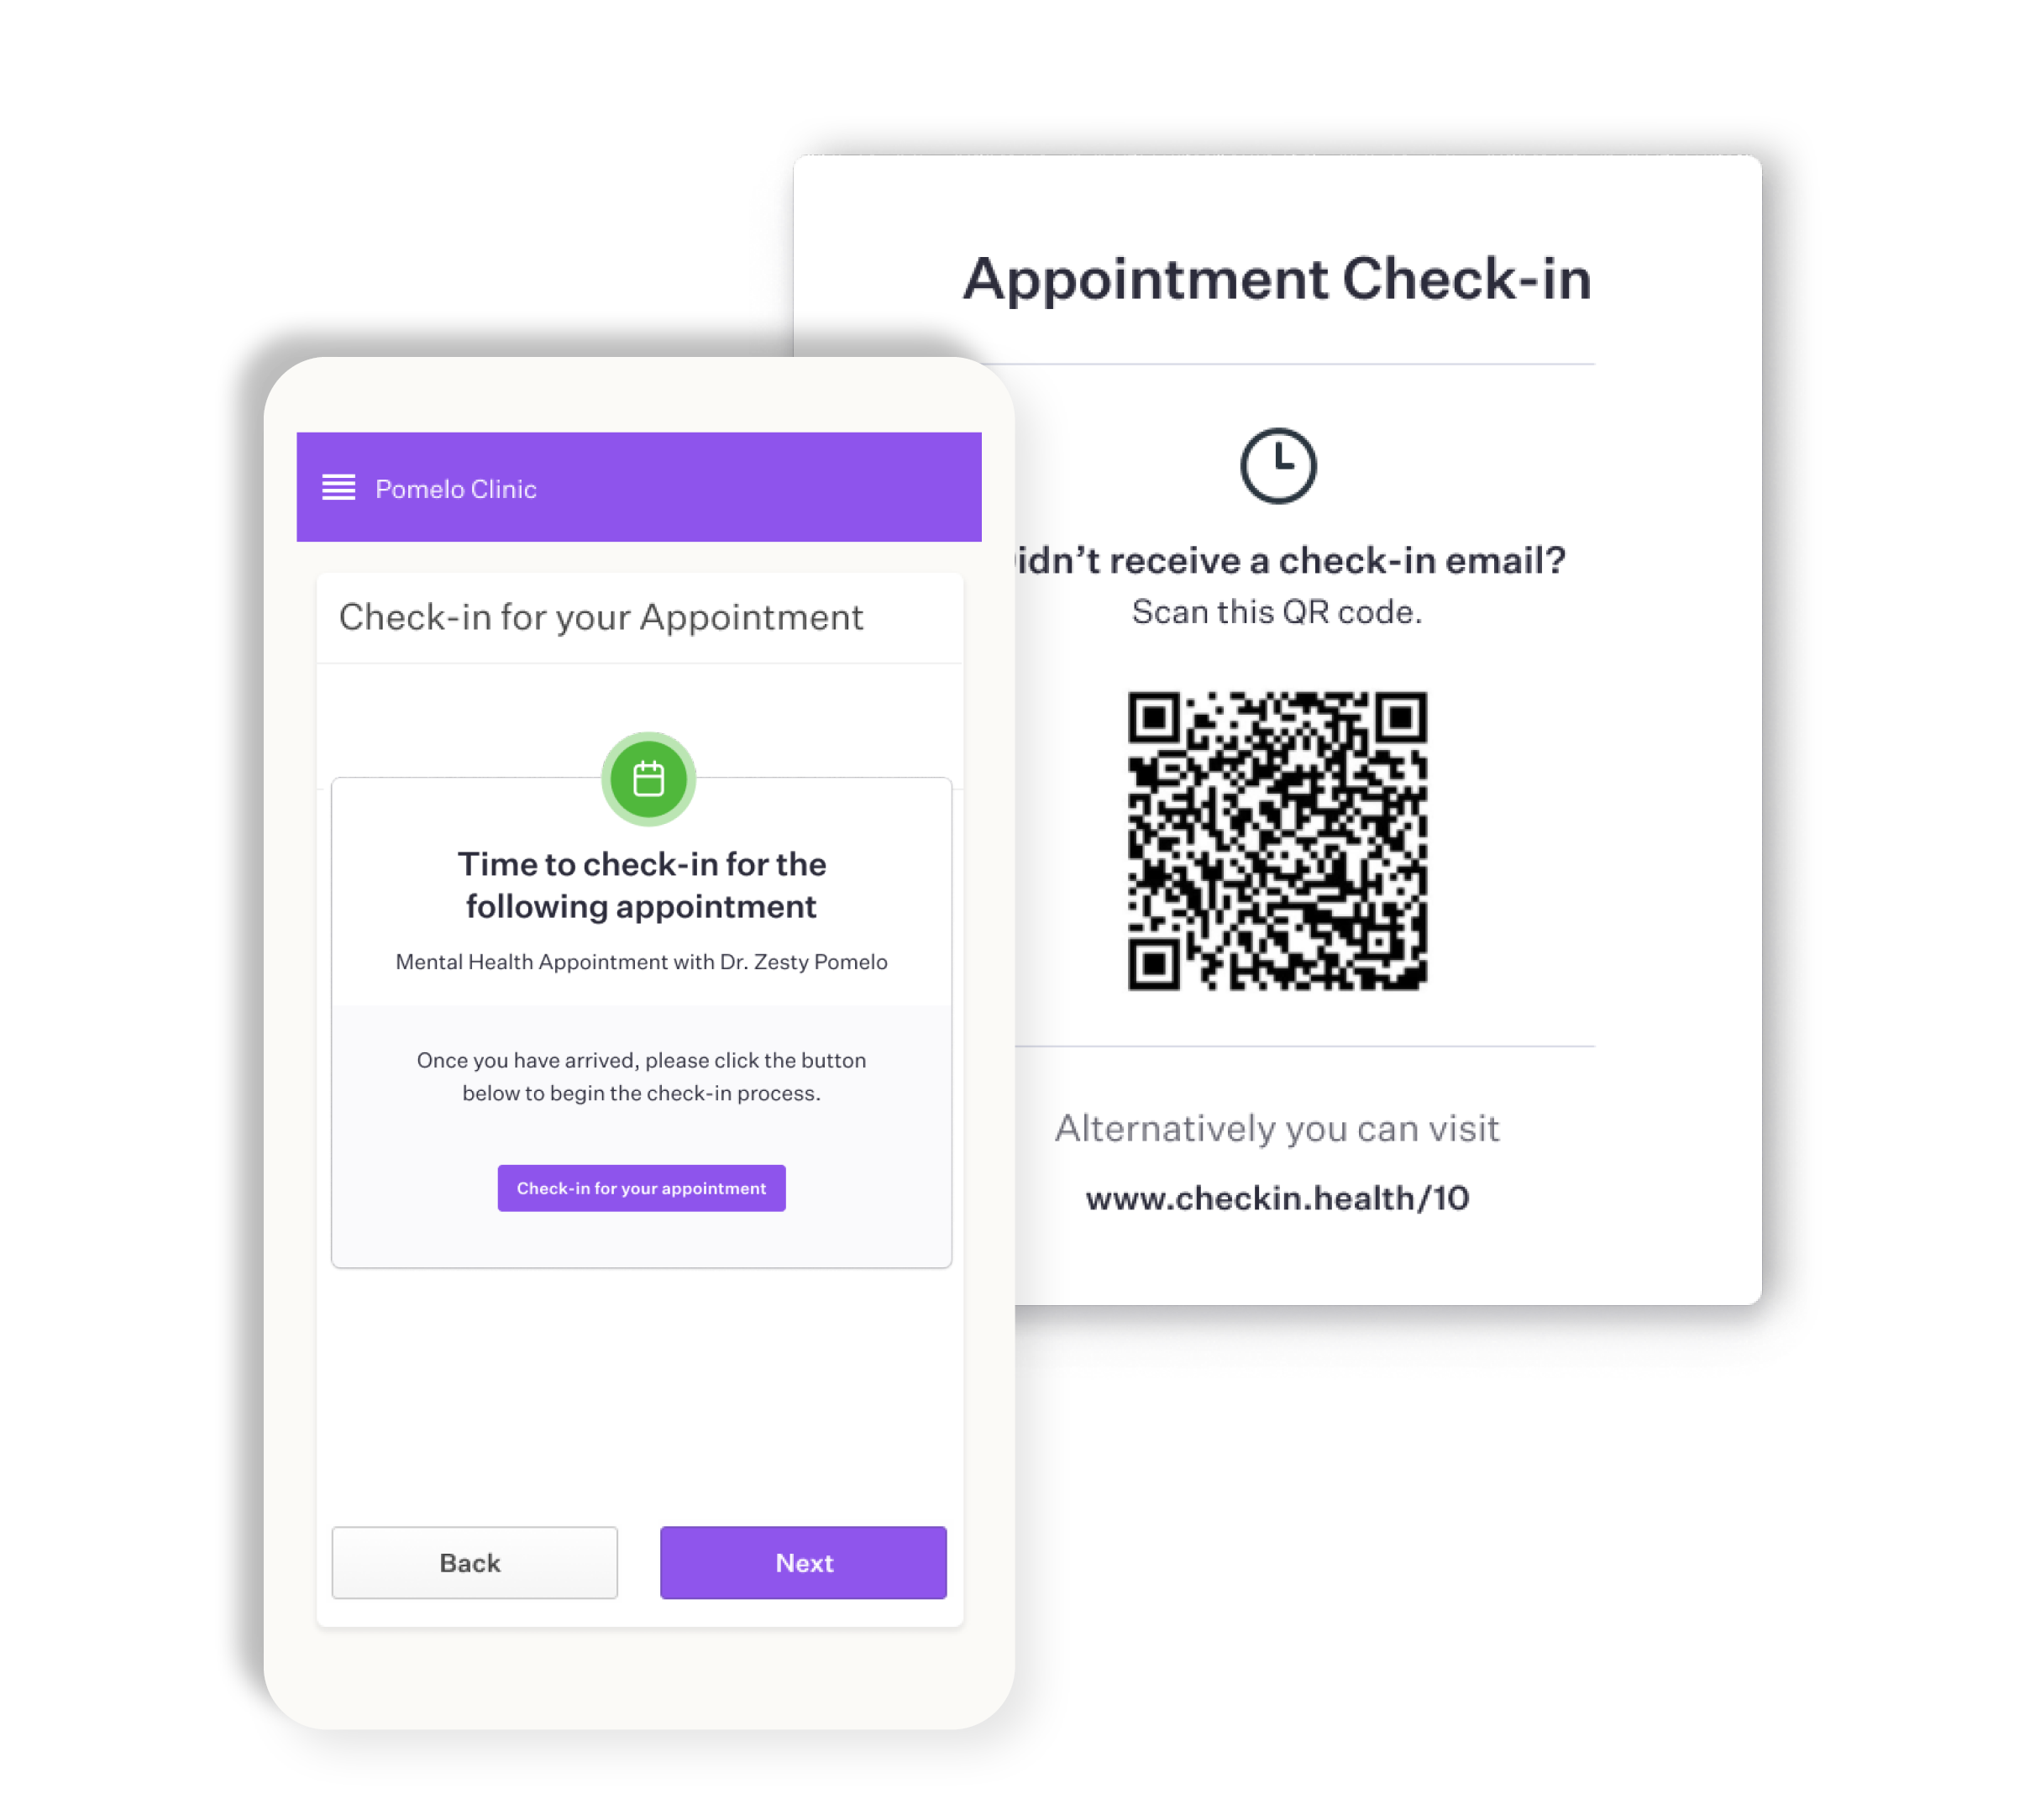 Allow your patients to self check-in using their mobile device